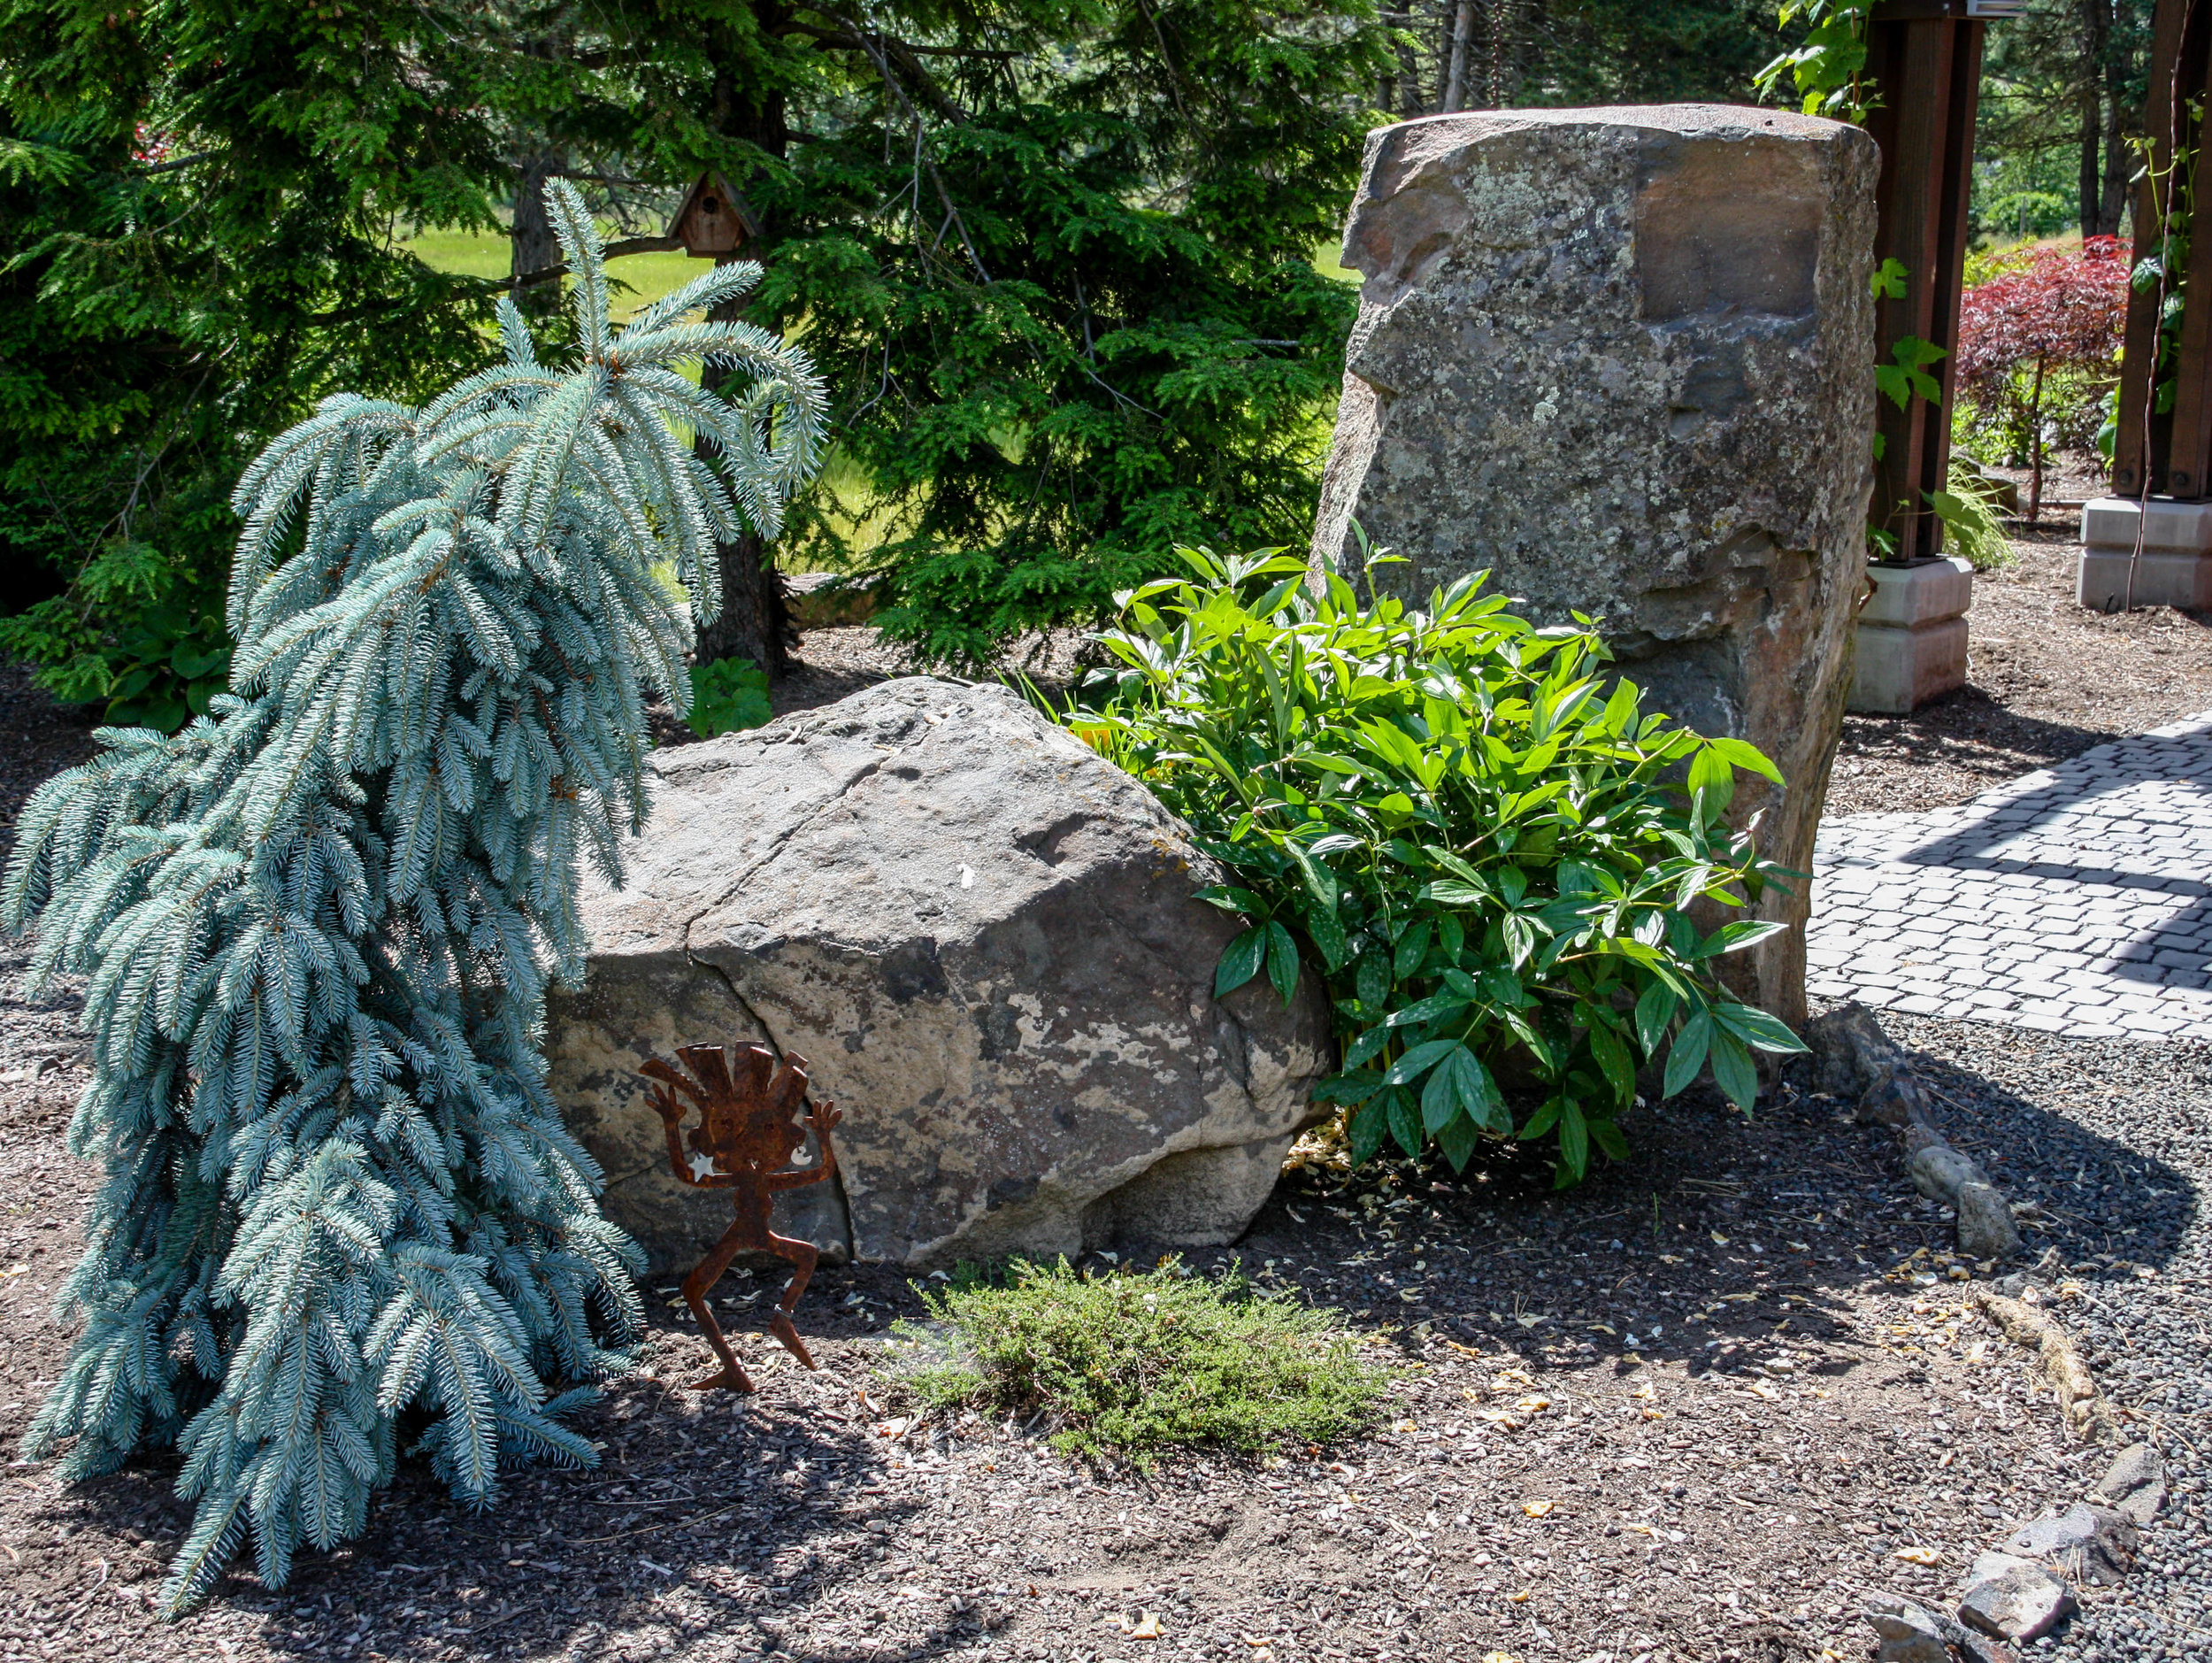 spokane northwest landscaping with boulders